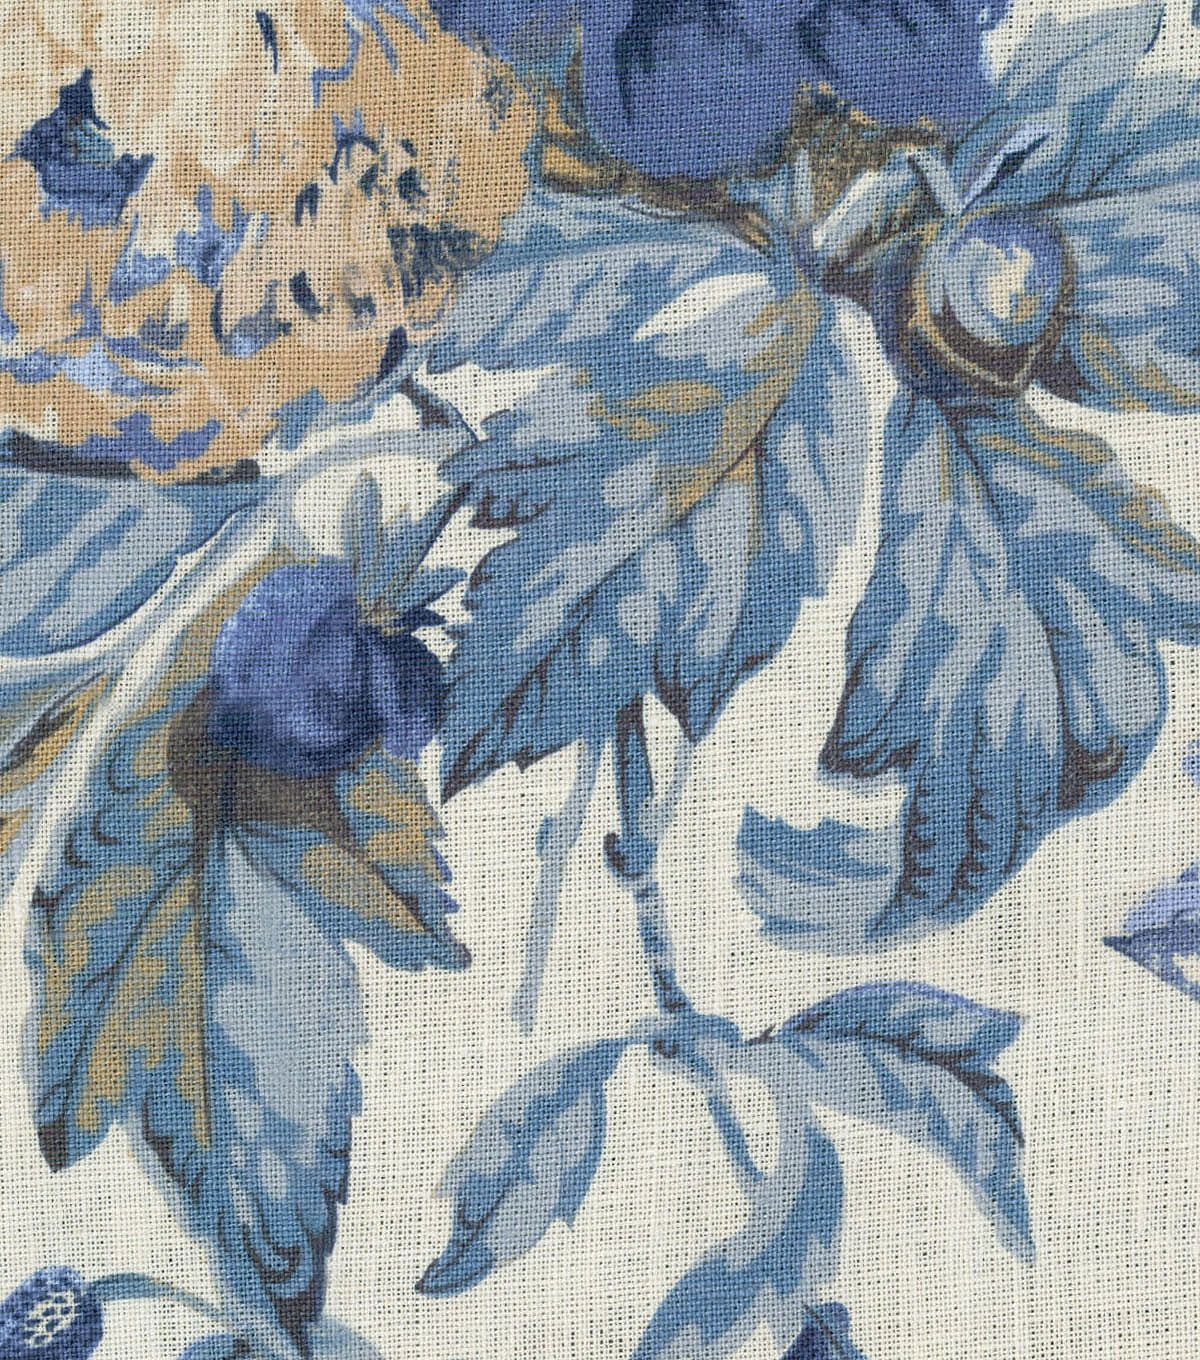 Waverly Multipurpose Decor Fabric Kensington Bloom Porcelain Joann In 2020 Fabric Decor Blue And White Fabric Decor